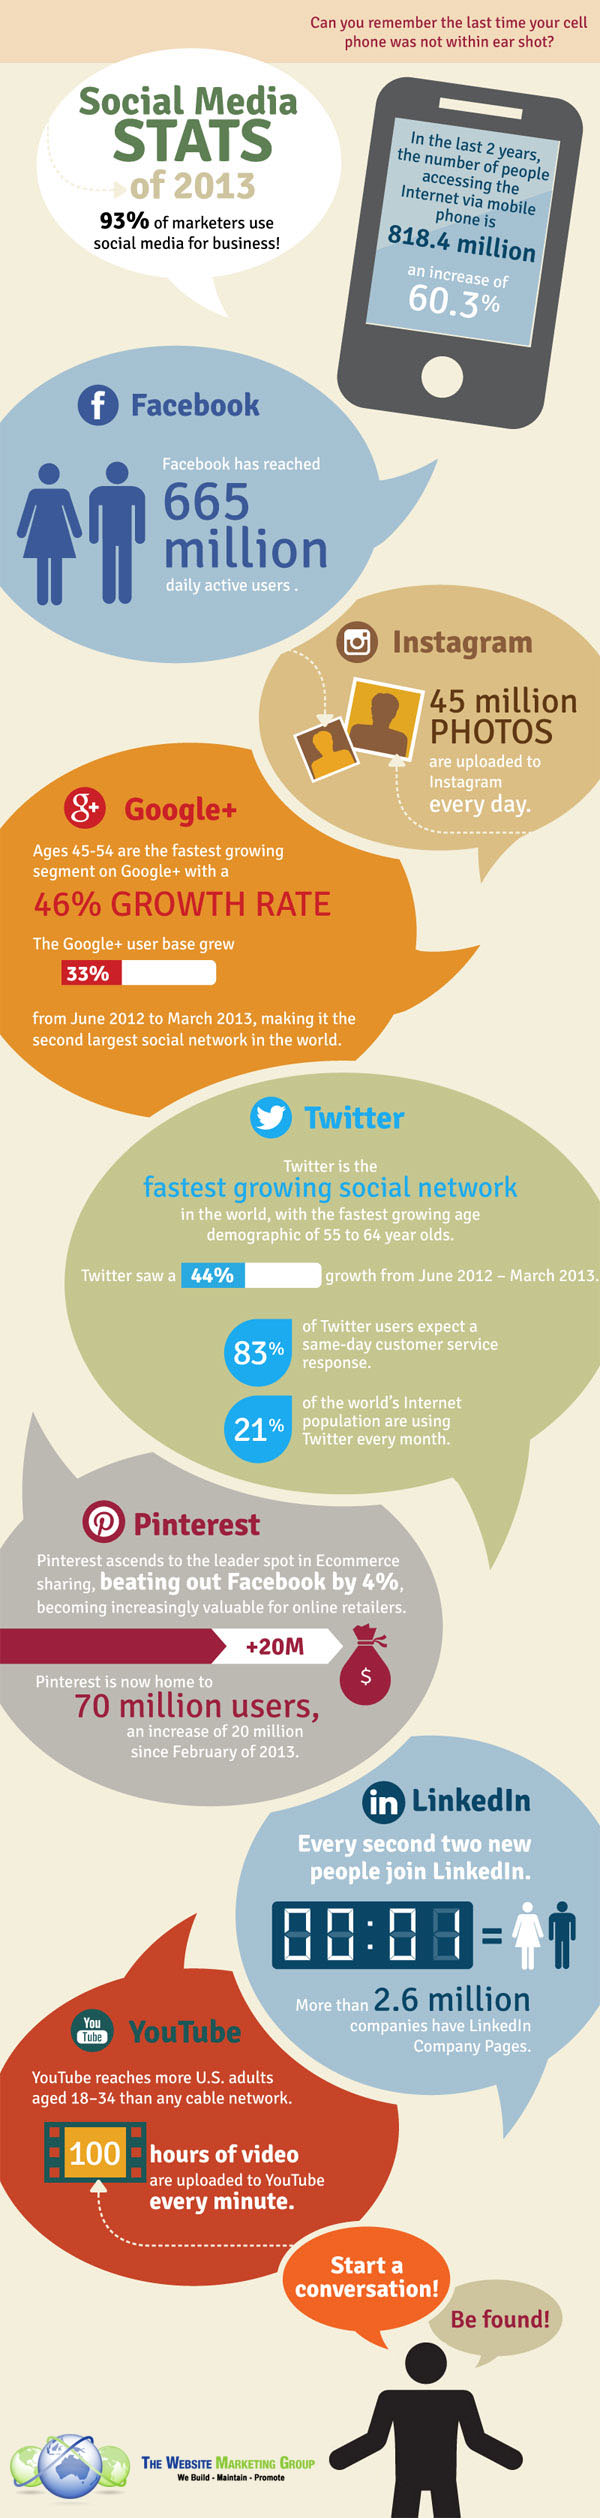 Social Media Statistieken in 2013 [Infographic]